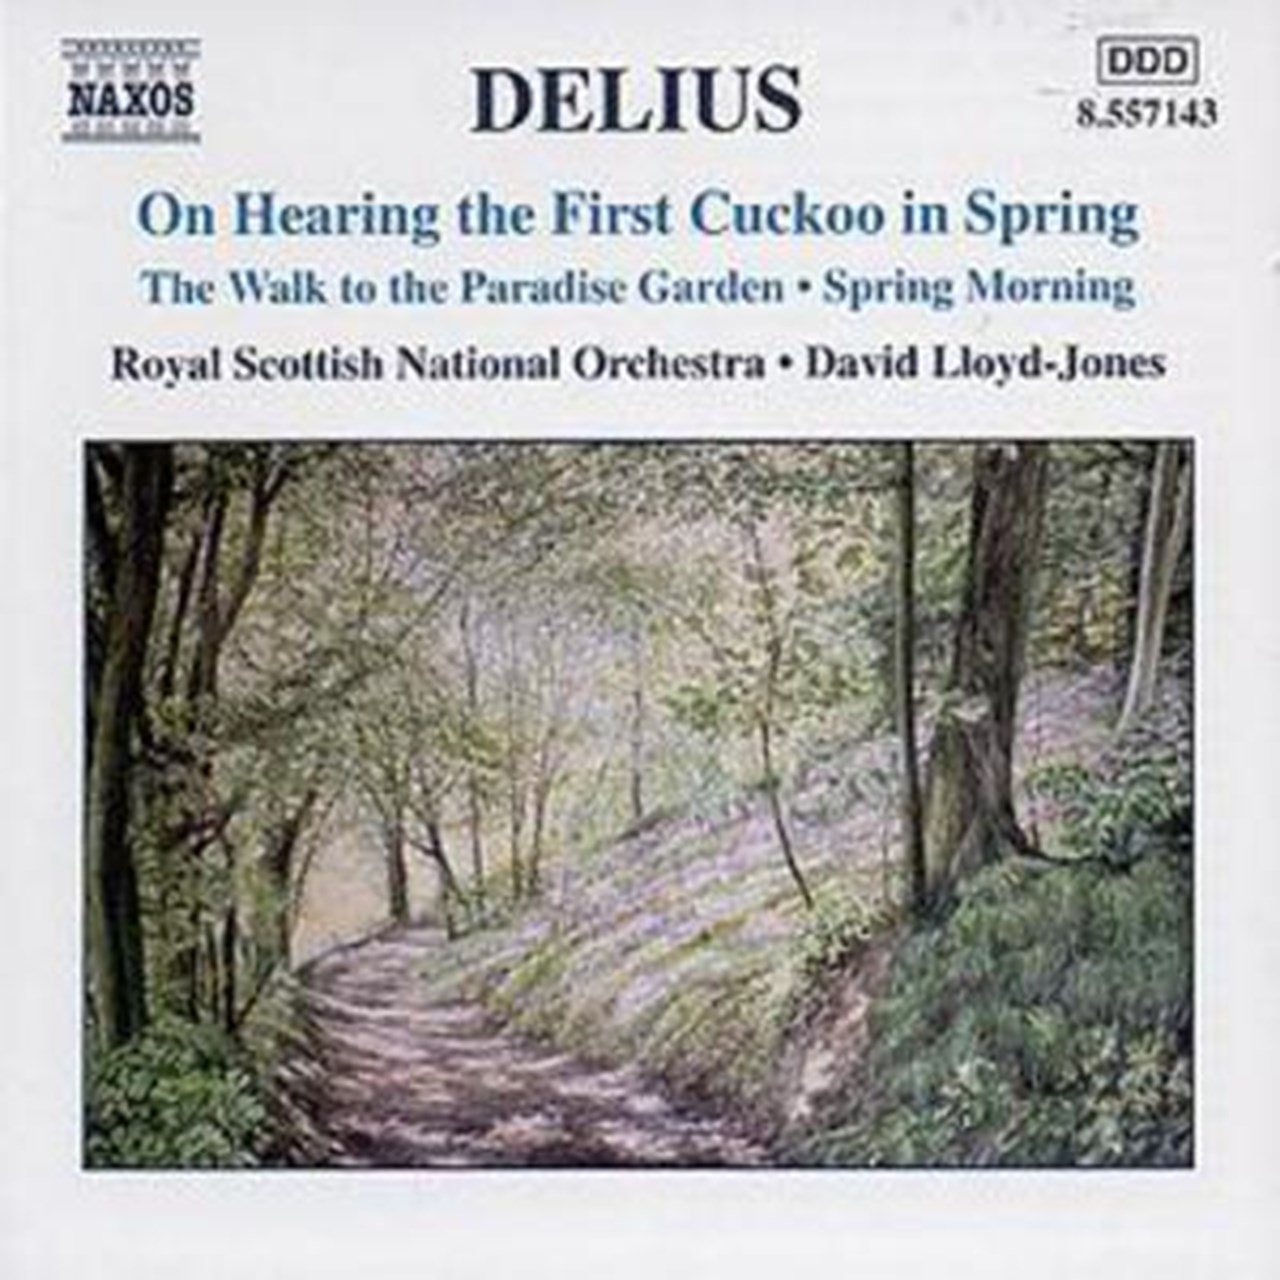 On Hearing the First Cuckoo in Spring (Lloyd-jones, Rsno) - 1